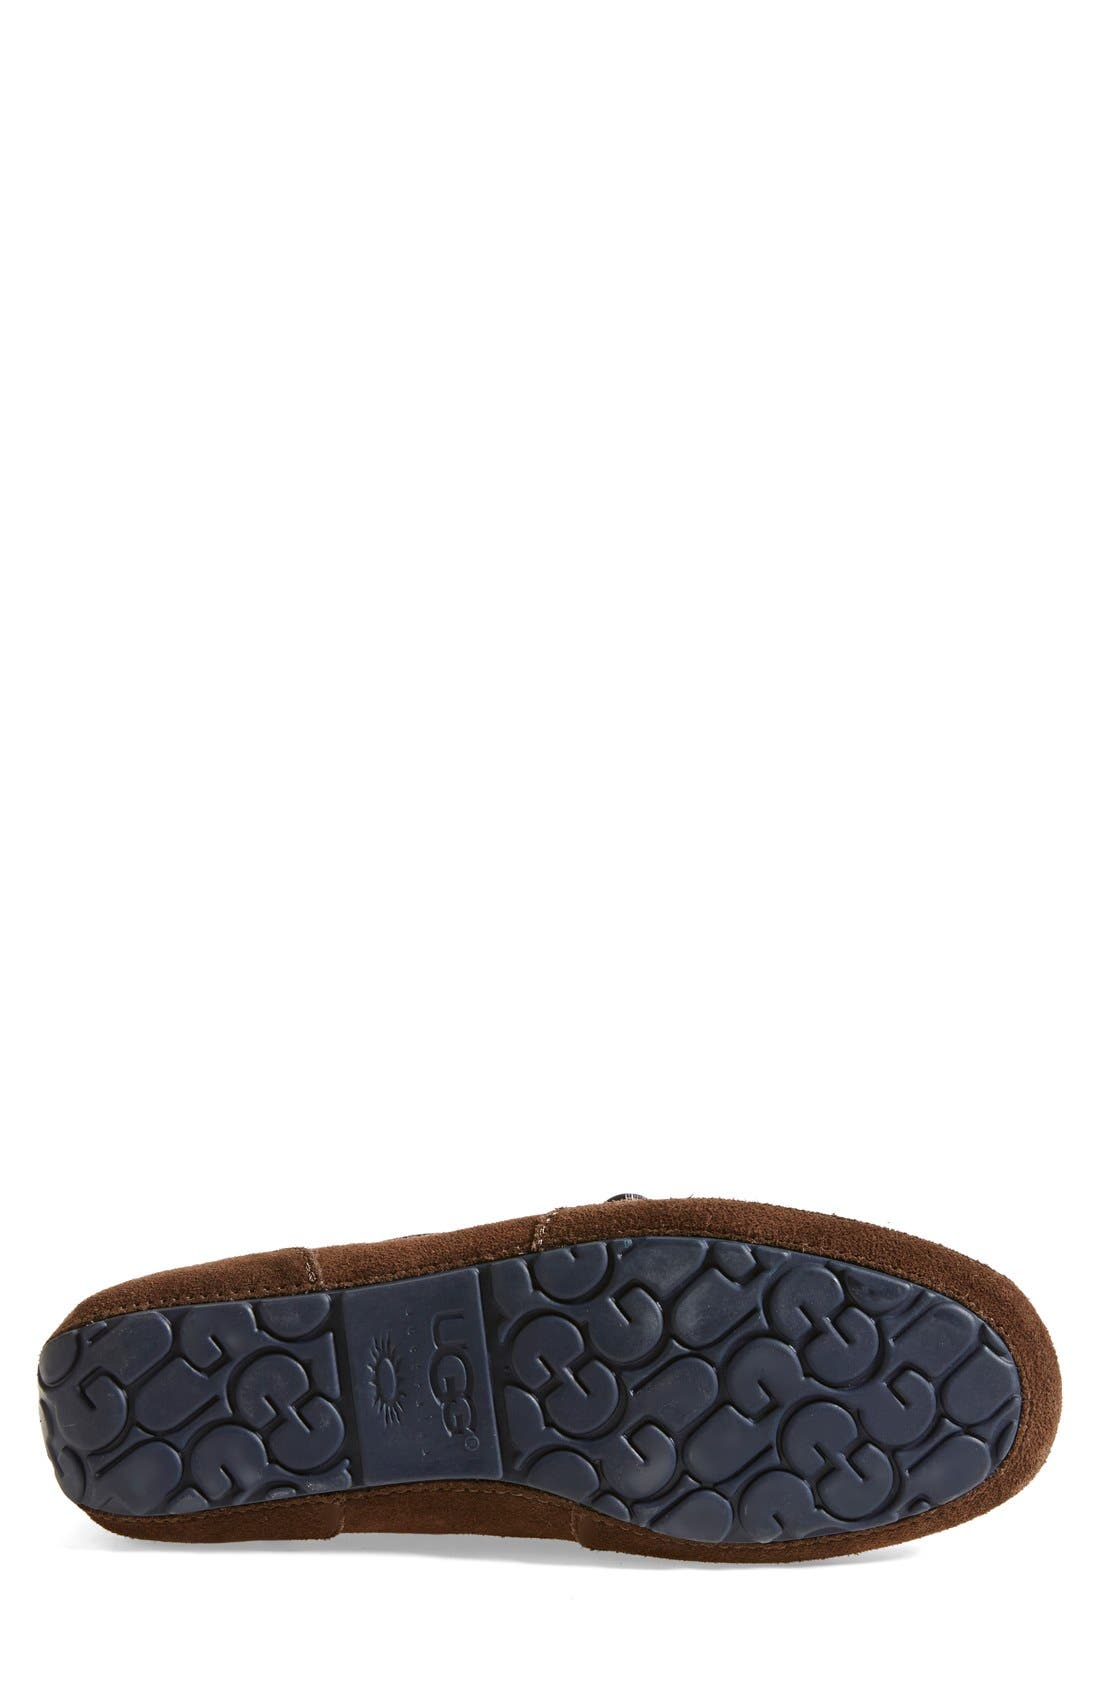 'Chester' Driving Loafer,                             Alternate thumbnail 31, color,